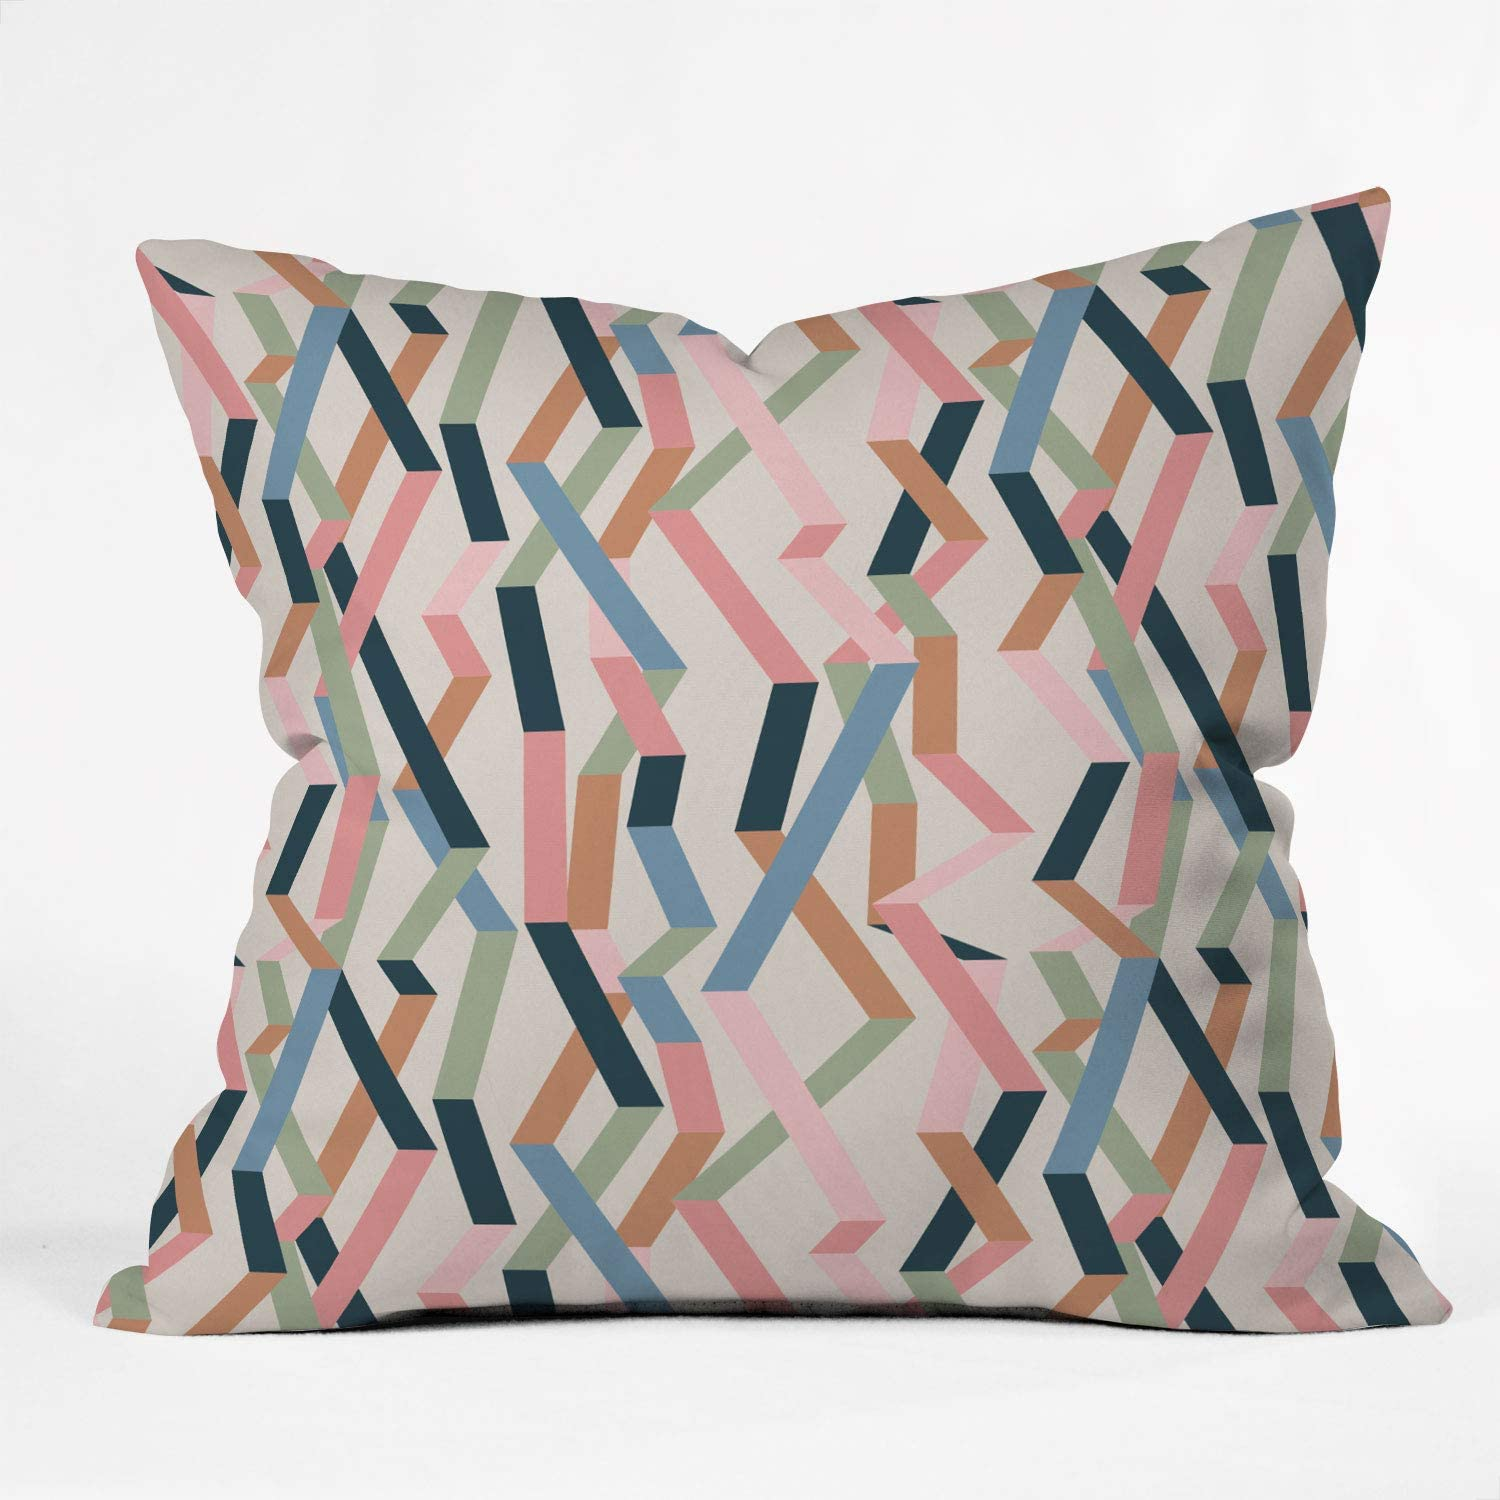 Deny Designs Mareike Boehmer Cheap mail order sales Straight P 55% OFF Geometry Ribbons 1 Throw